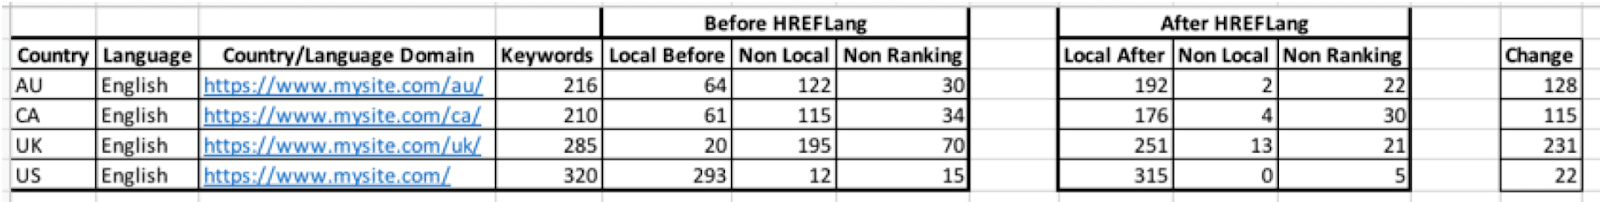 How to Develop a Solid Business Case for Hreflang Implementation